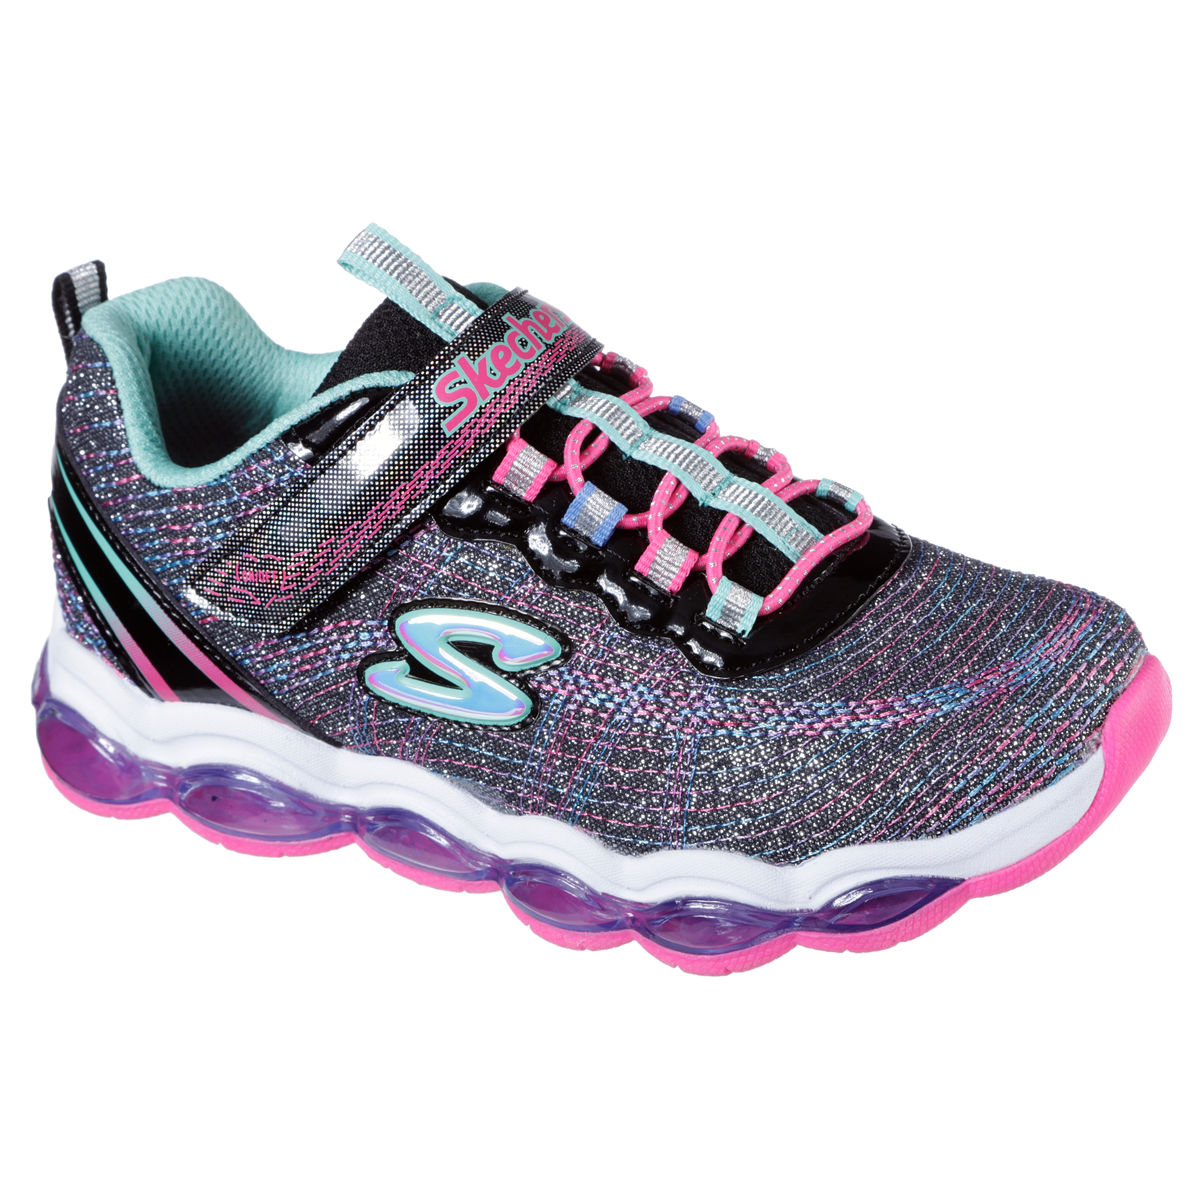 Skechers S Glimmer Lites Pre School Girls Casual Shoe